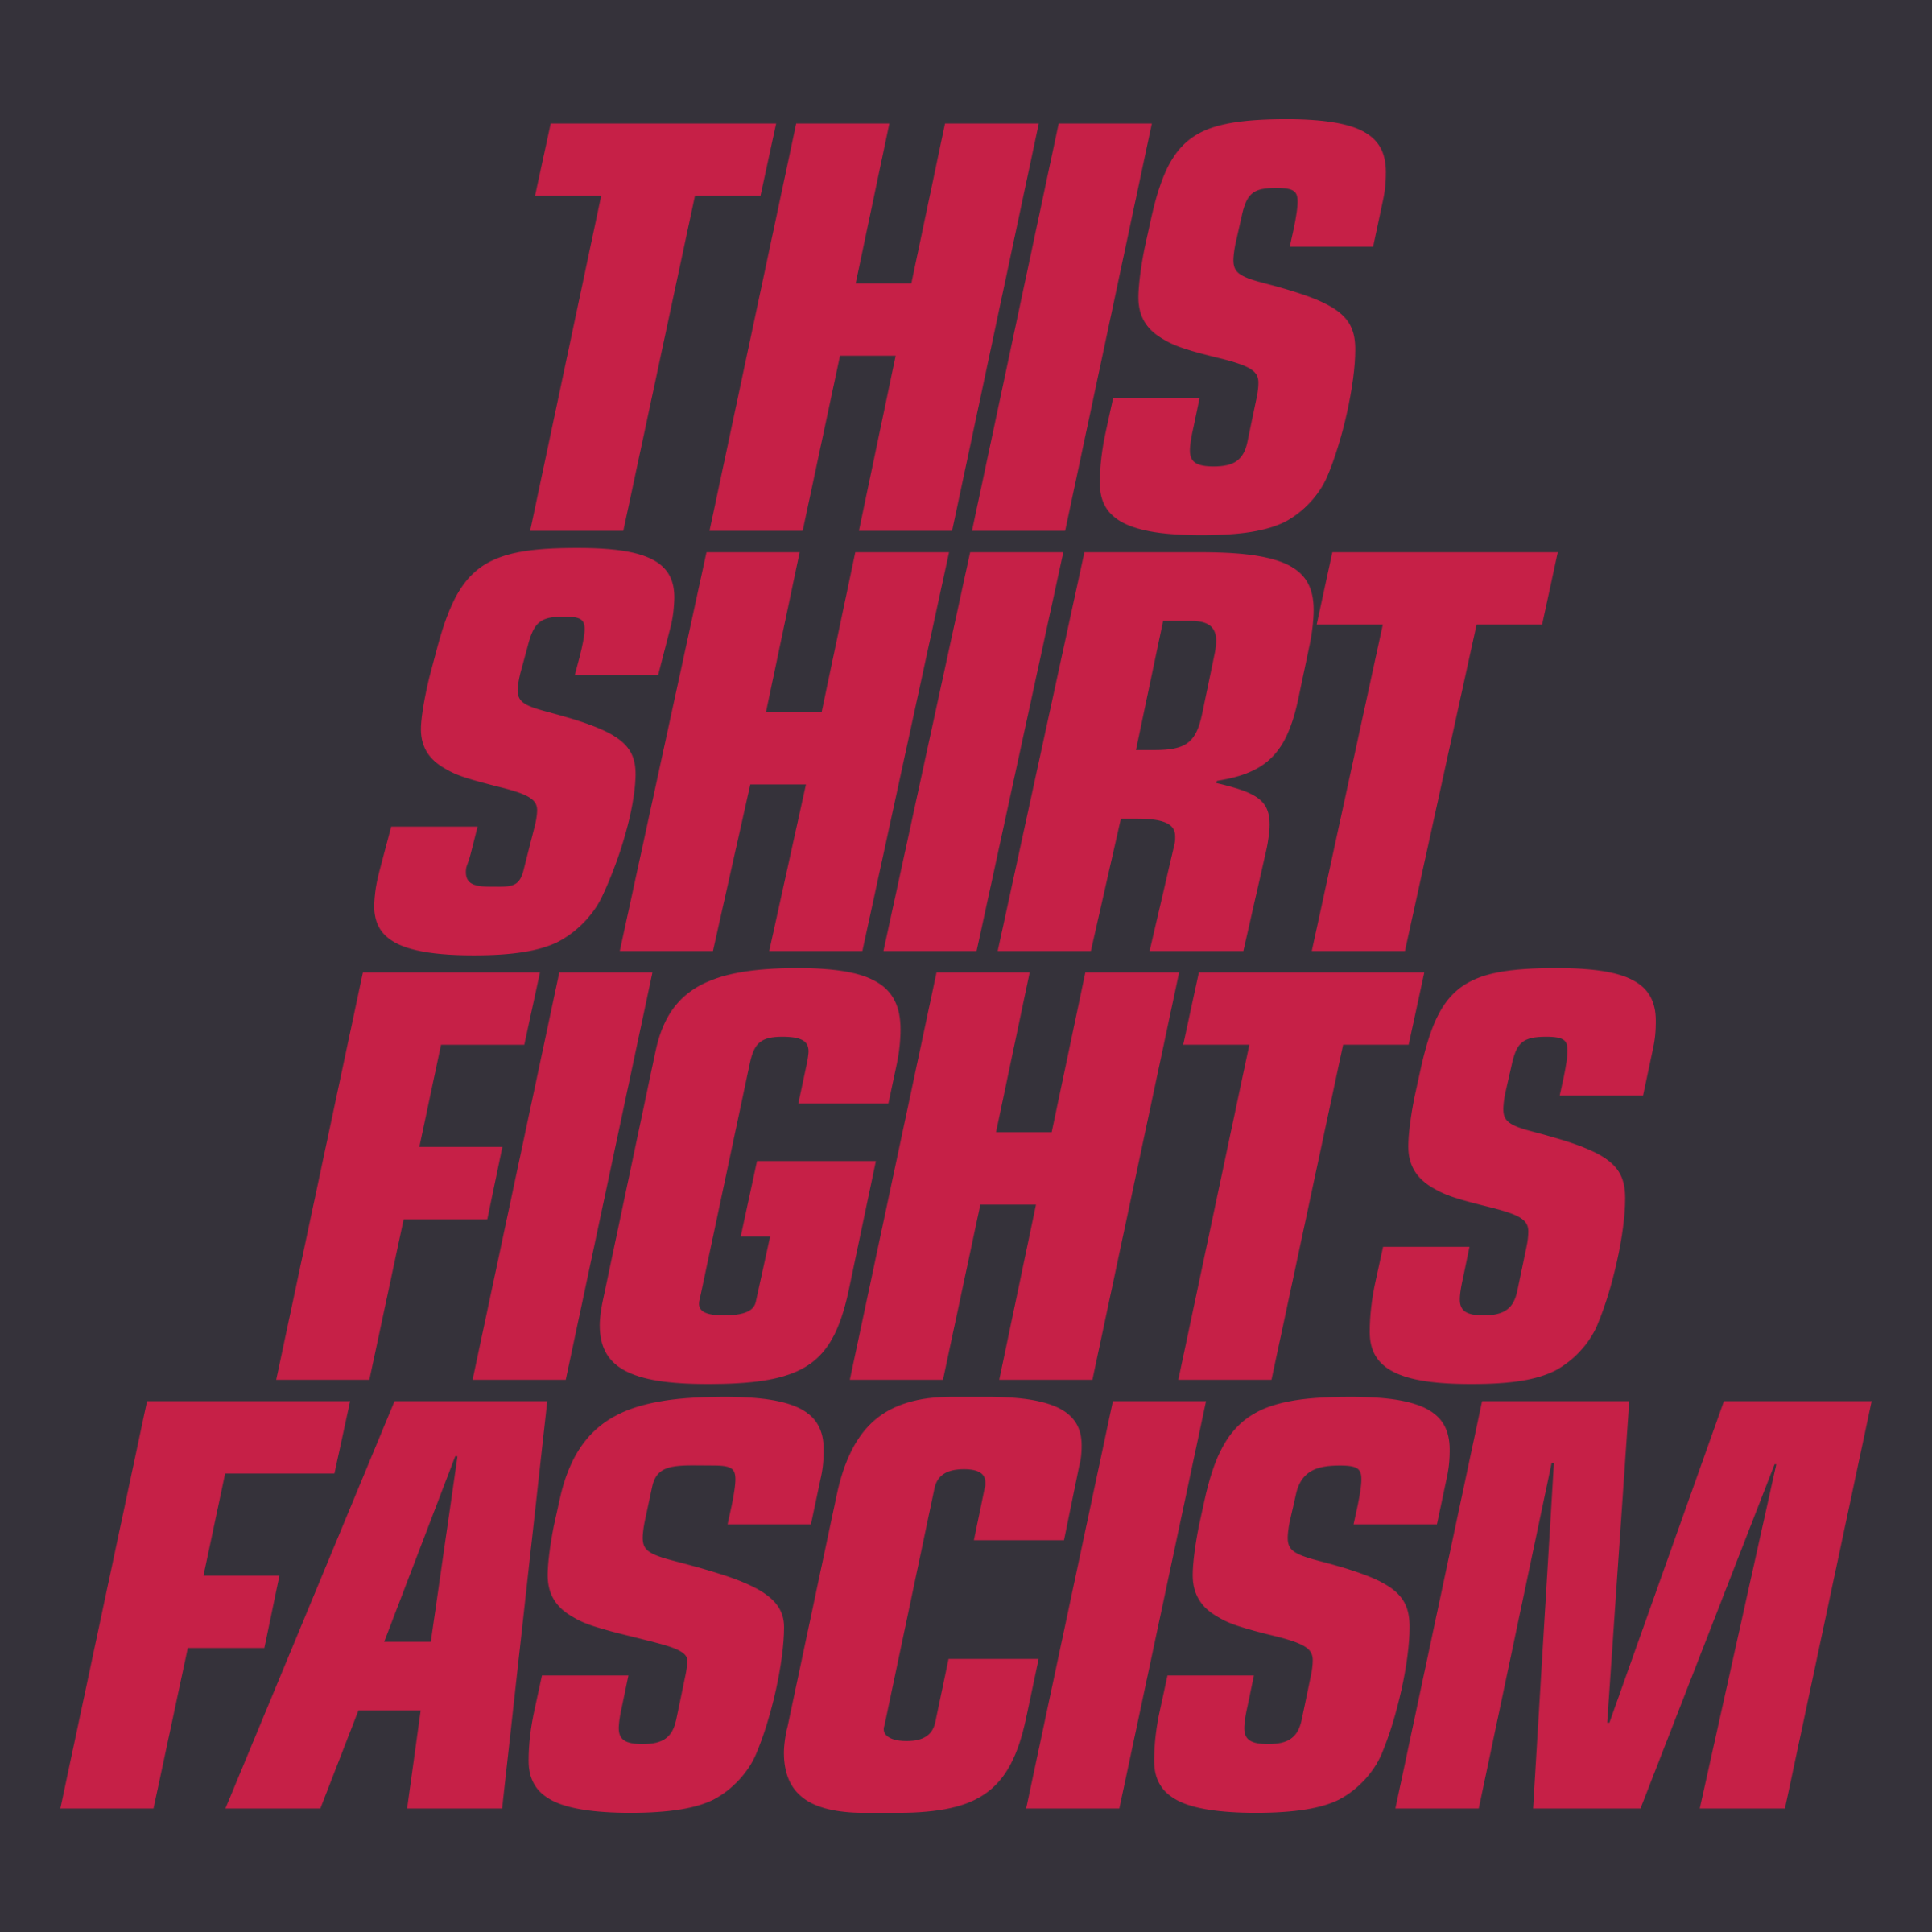 This Shirt Fights Fascism